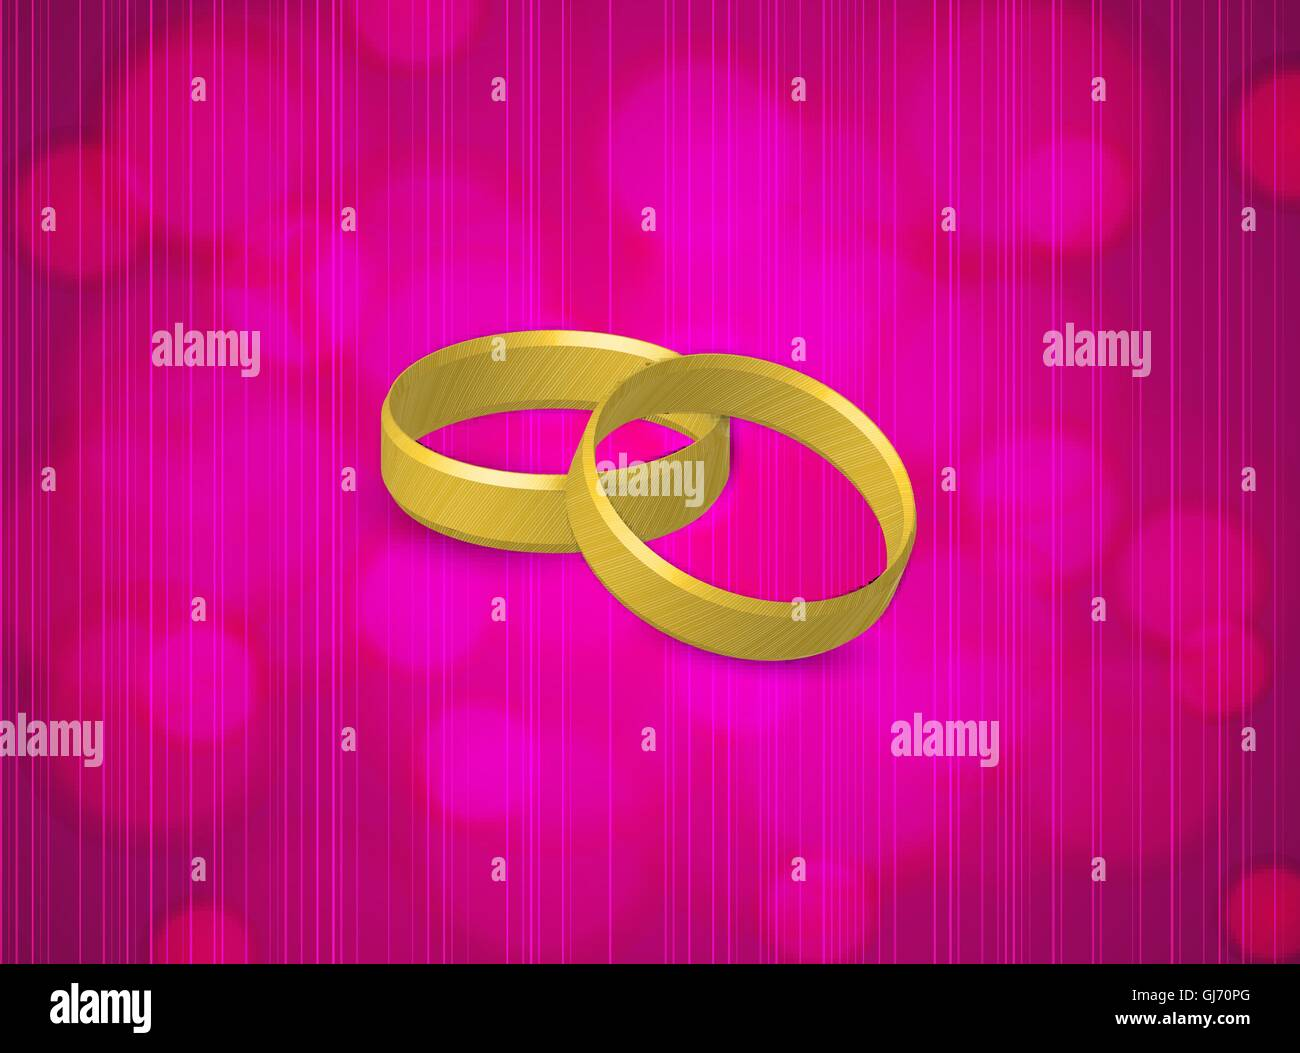 Gold Wedding Rings Together Stock Vector Images - Alamy